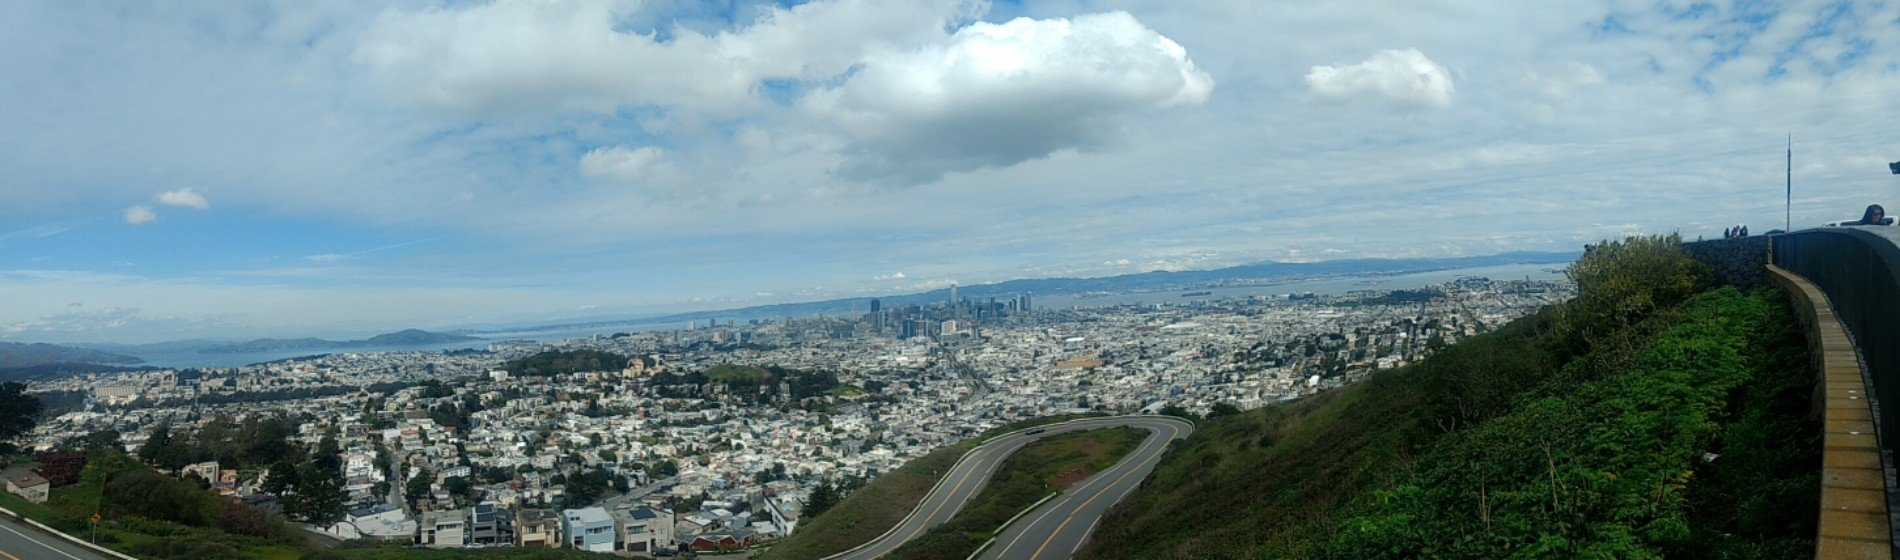 Checked in at Twin Peaks Summit